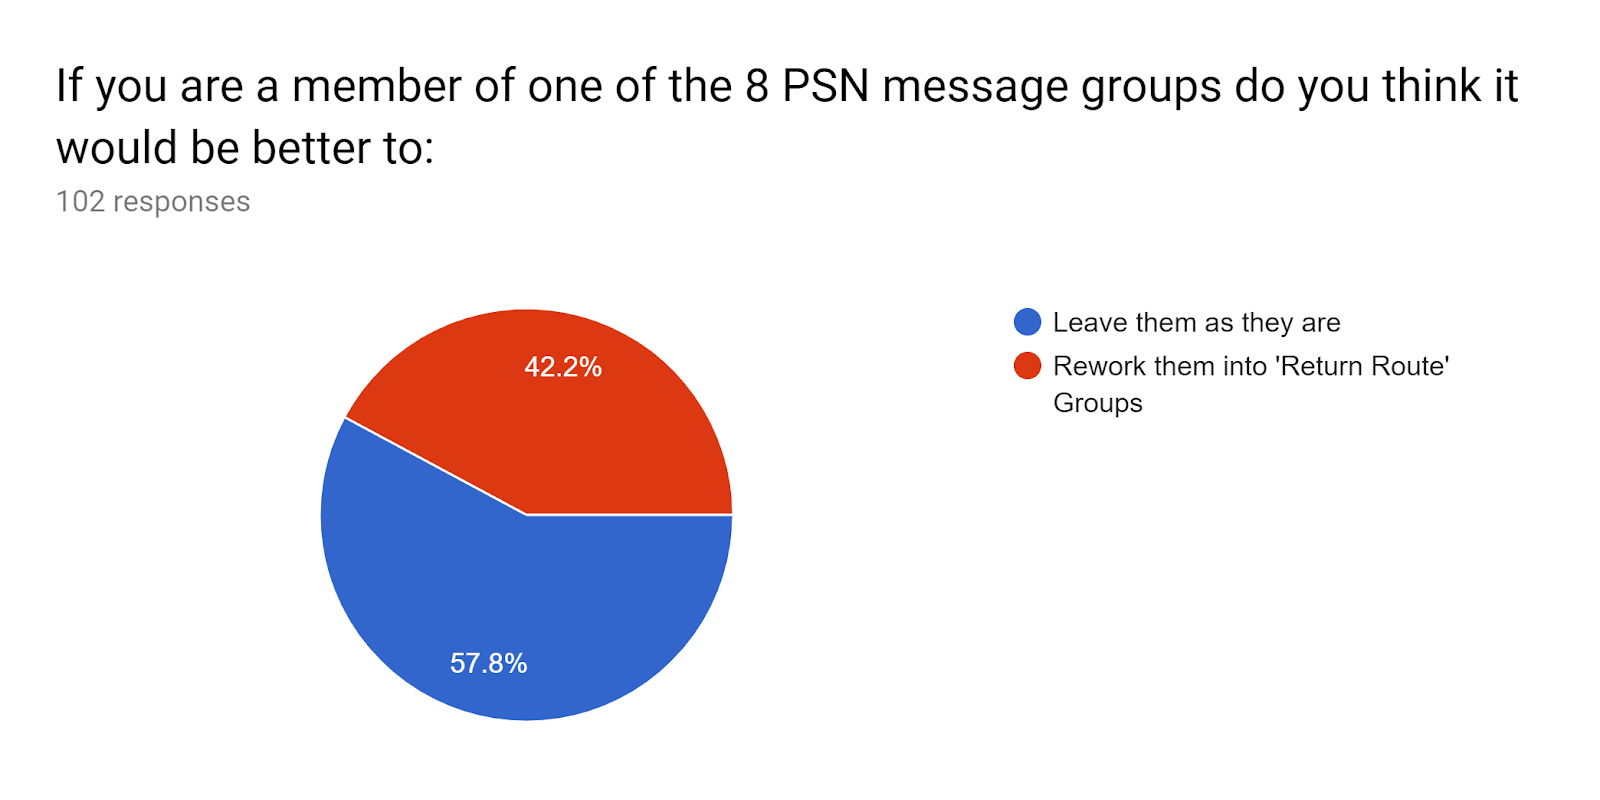 Forms response chart. Question title: If you are a member of one of the 8 PSN message groups do you think it would be better to:. Number of responses: 102 responses.